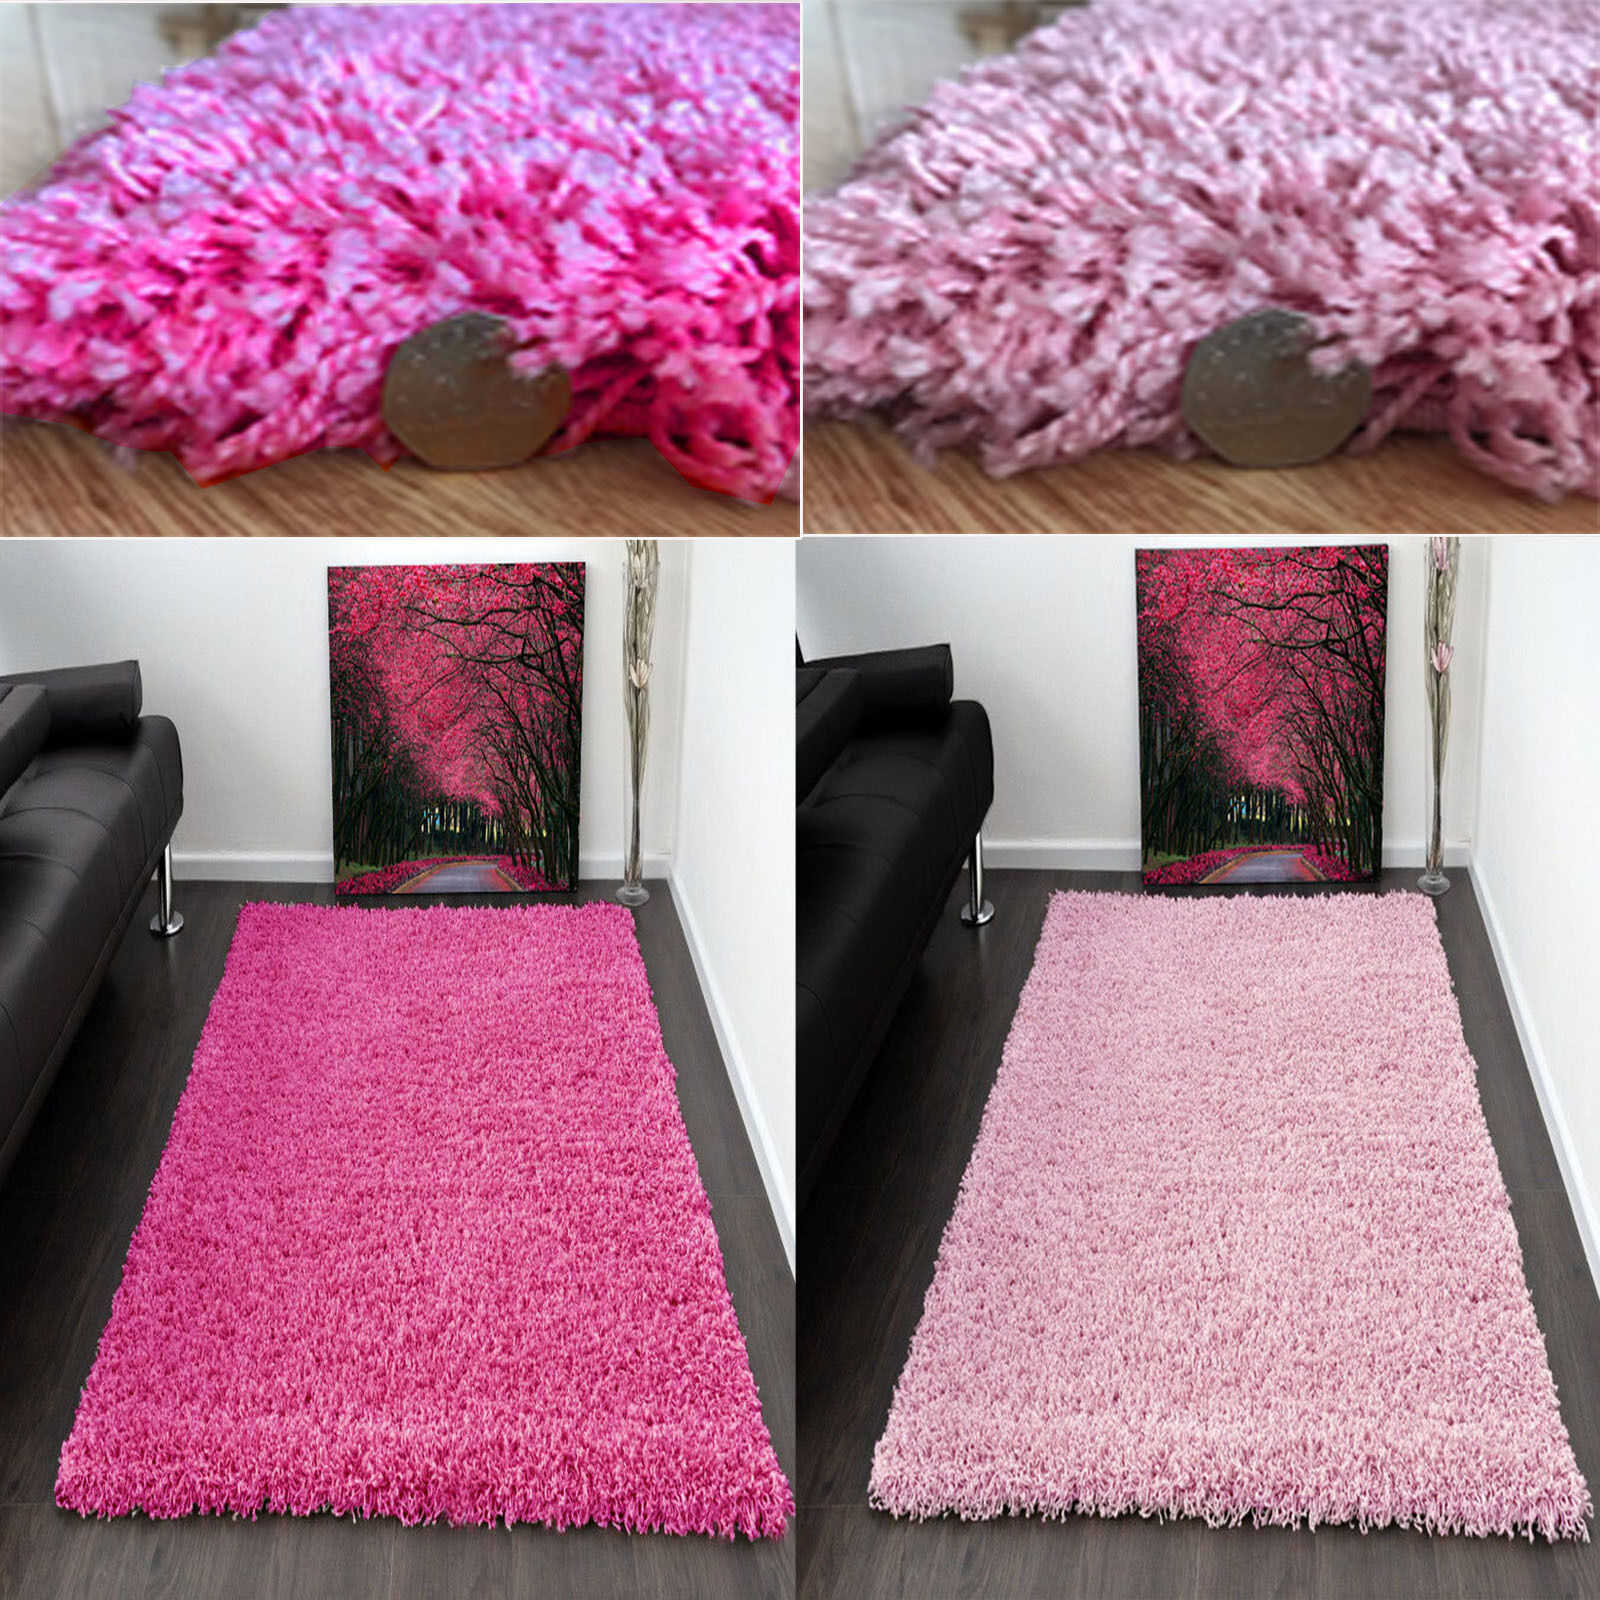 element elements choose decorative home important of rug and an girls are the pin rugs area